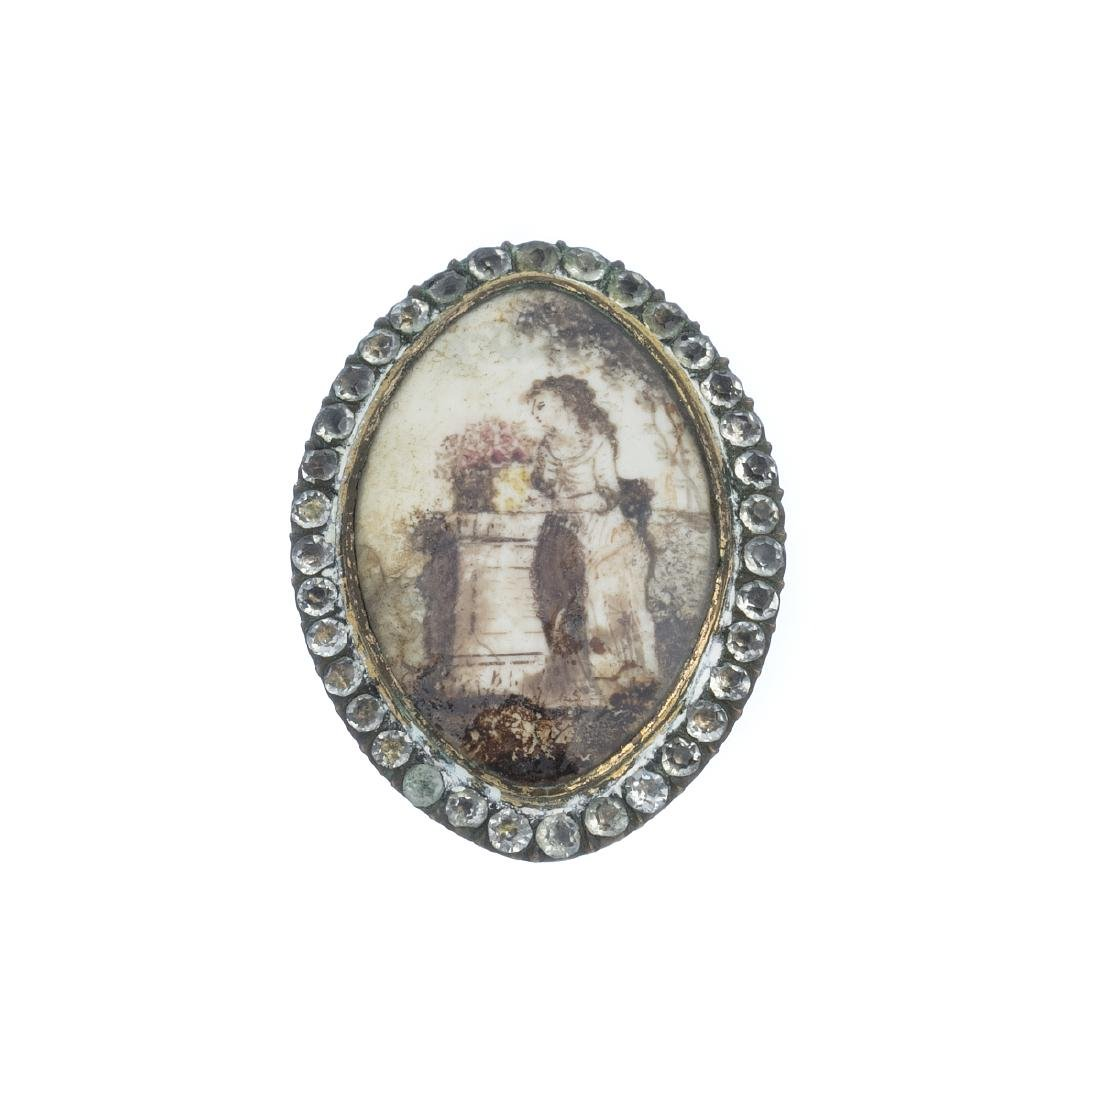 Silver brooch with glasses, 19thC